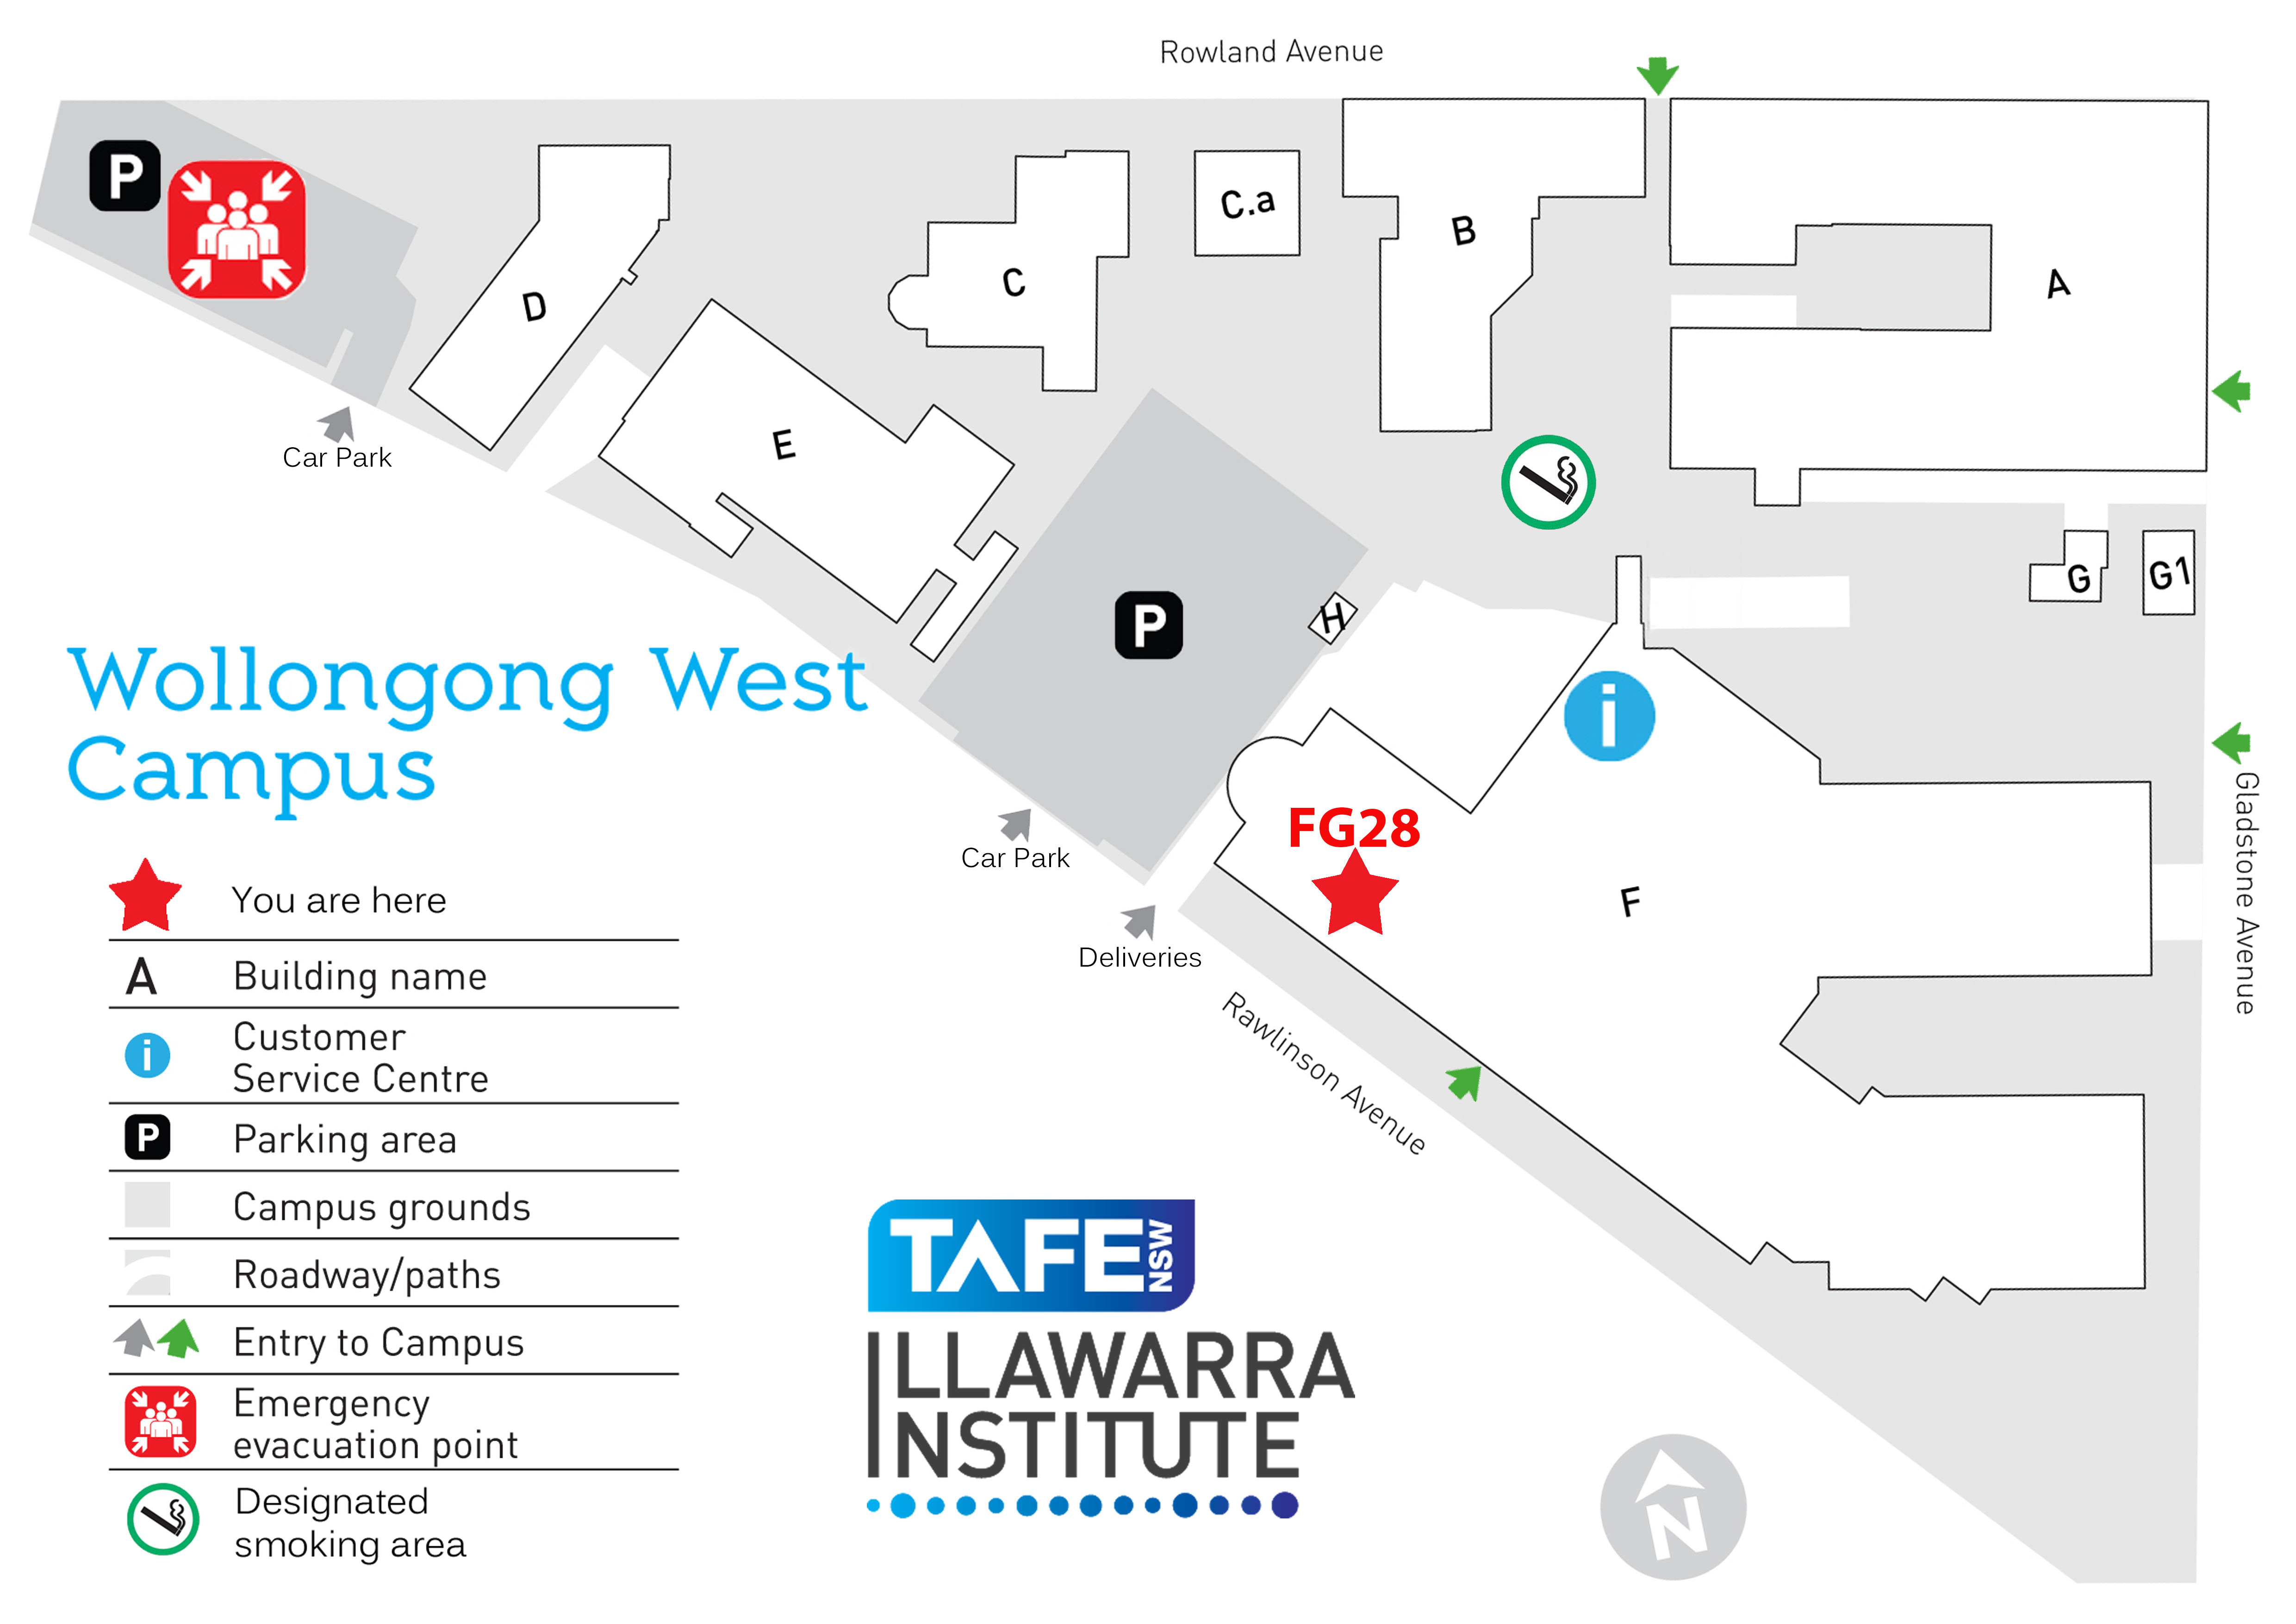 Illawarra Digital Enterprise Program - TAFE Illawarra Campus Map